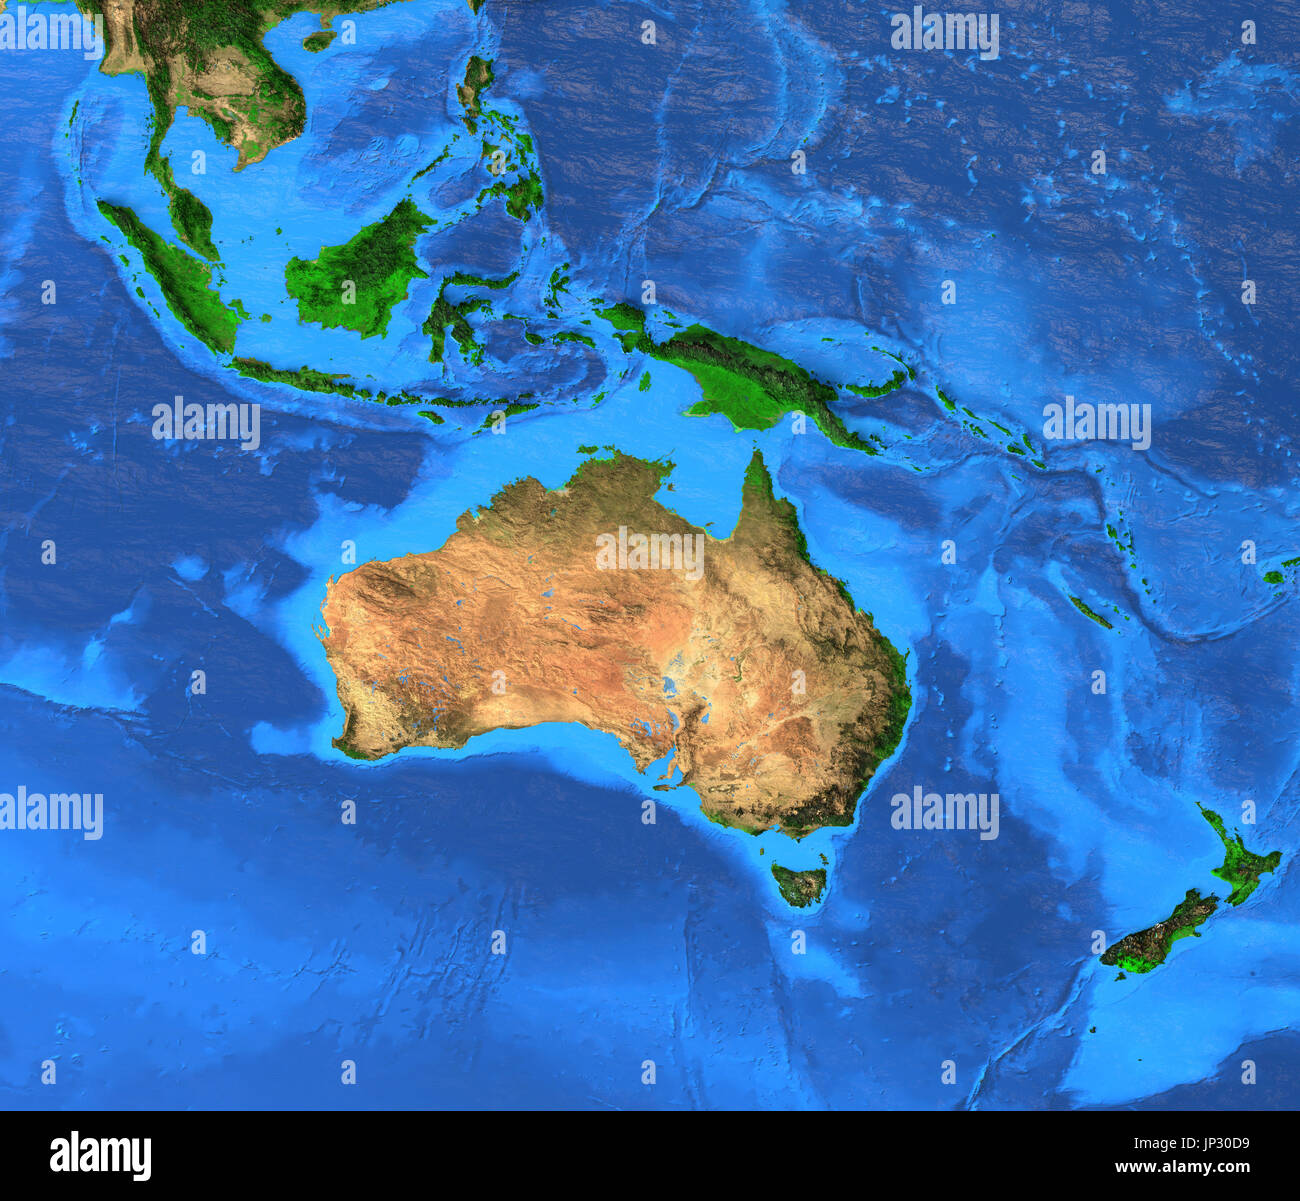 Oceania Map Australasia Polynesia Melanesia Micronesia Region - Earth map satellite